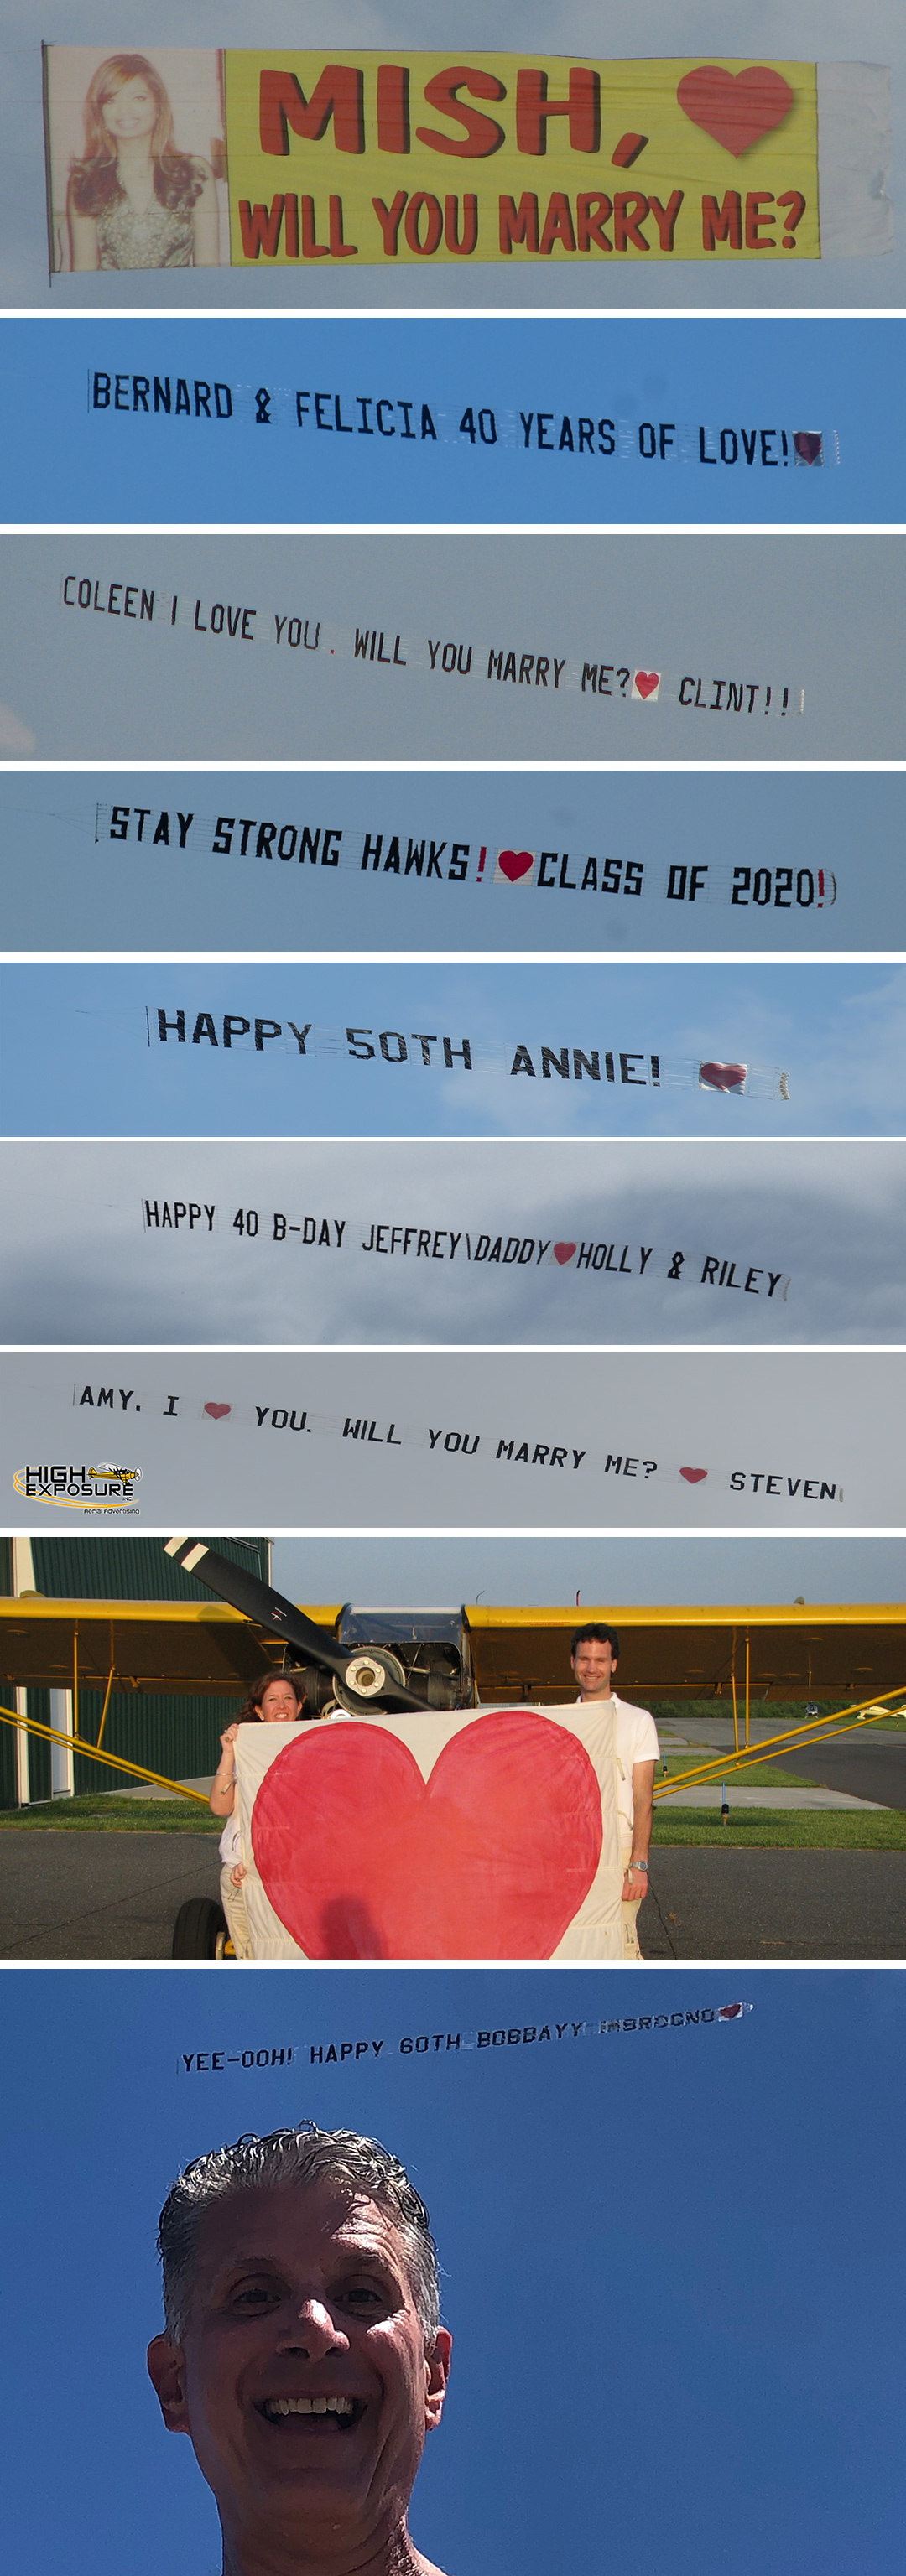 Will you marry me airplane banner proposal